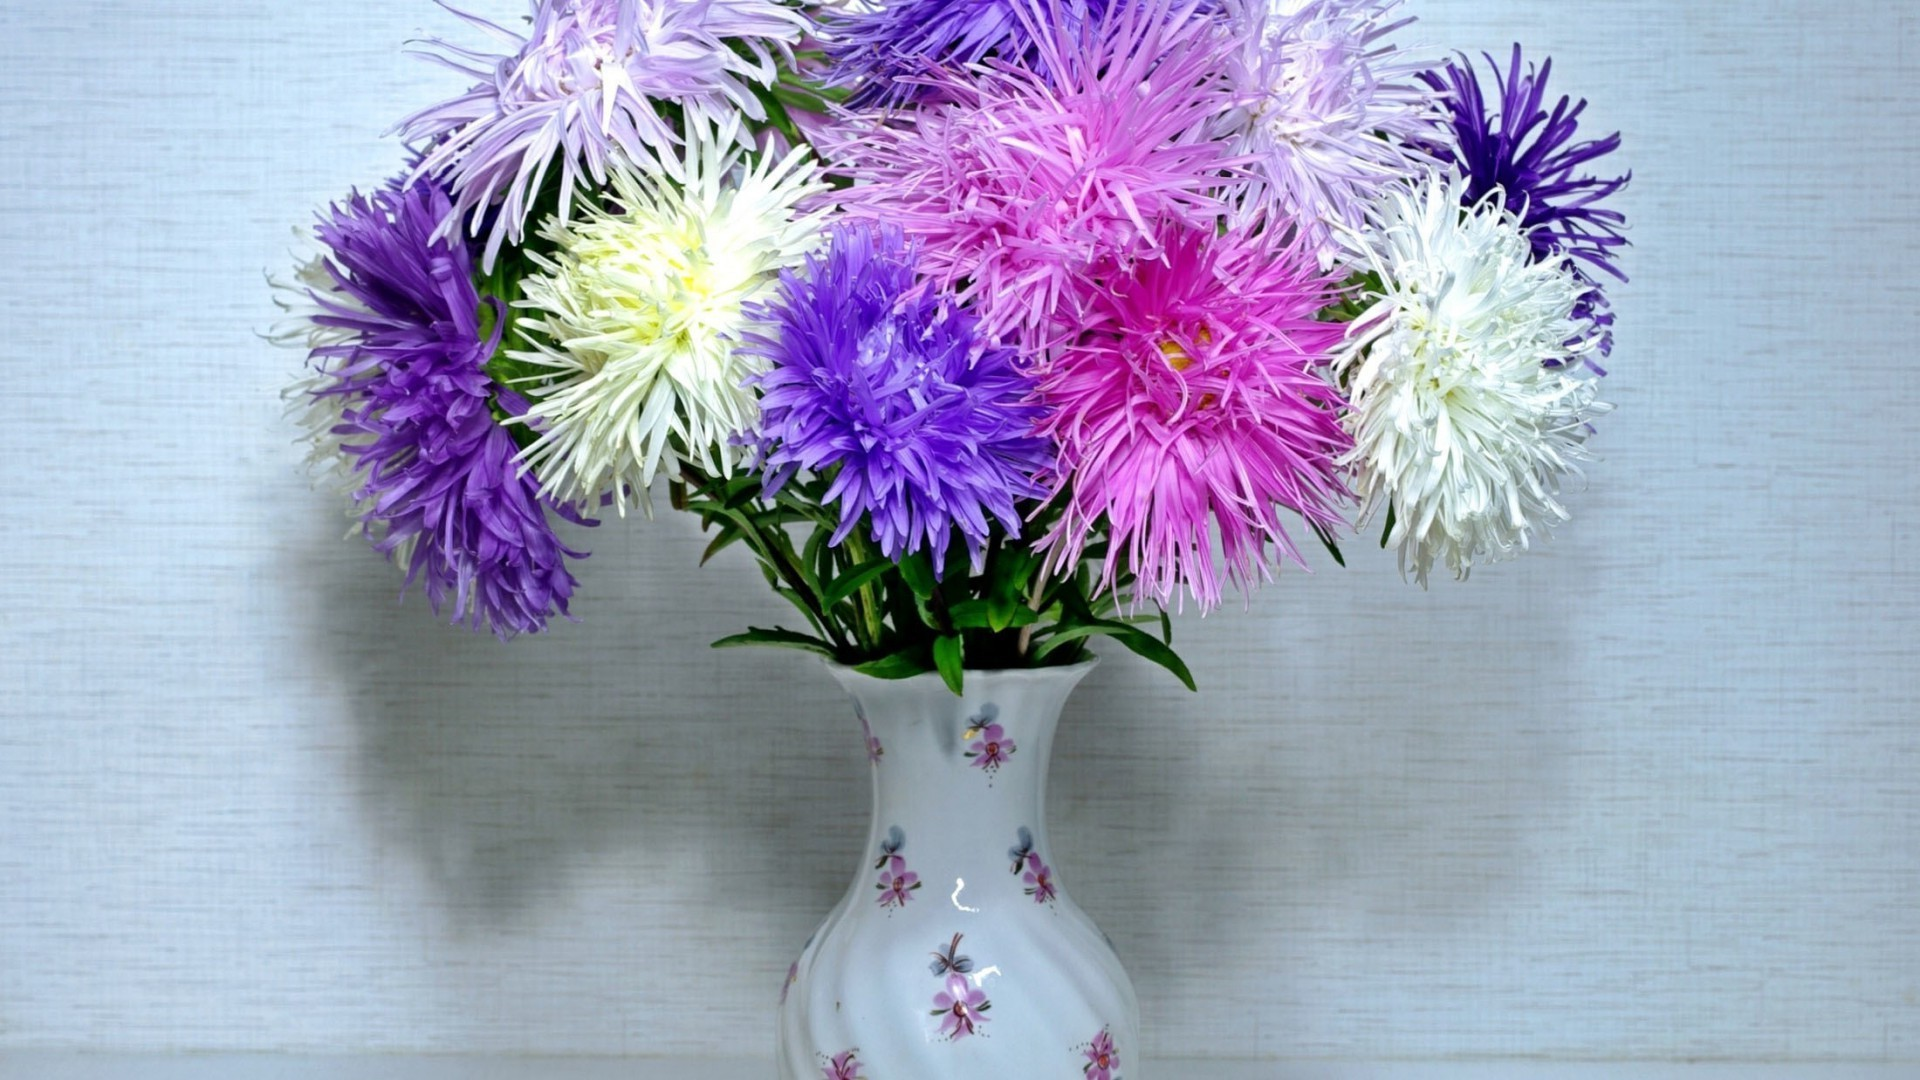 Asters in a vase